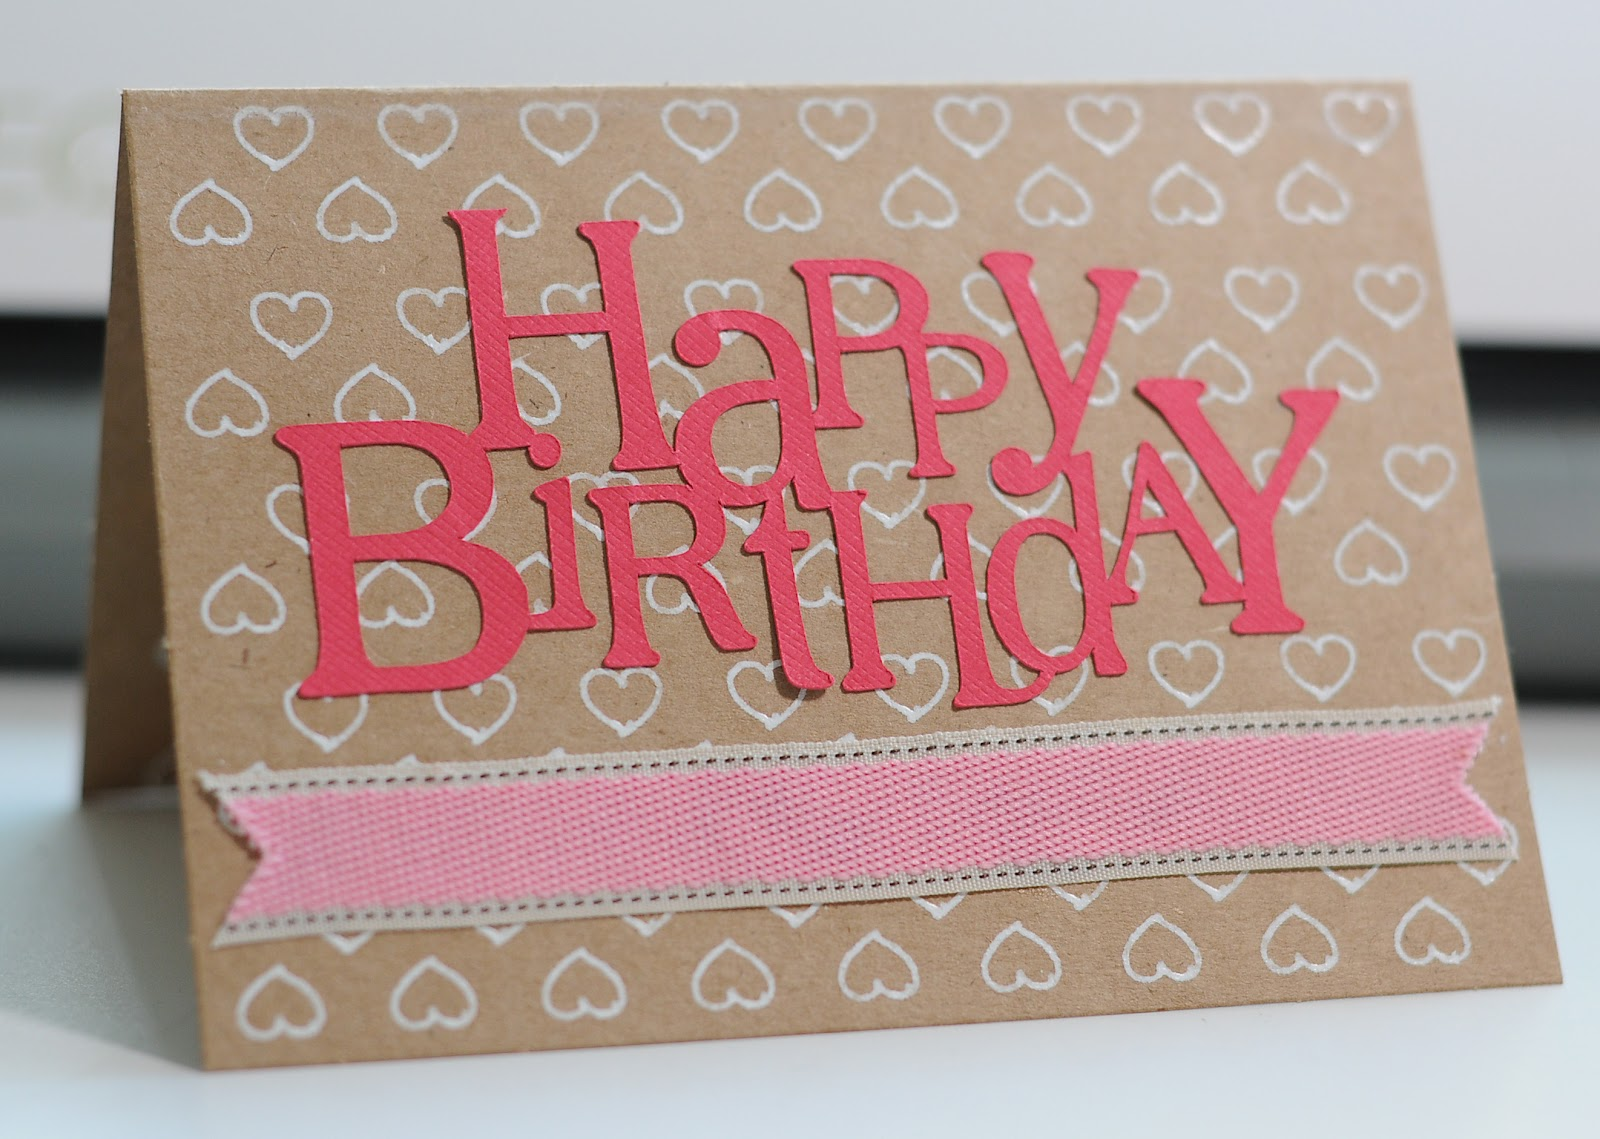 amy chomas birthday card with chomas creations adjustable marker, Birthday card